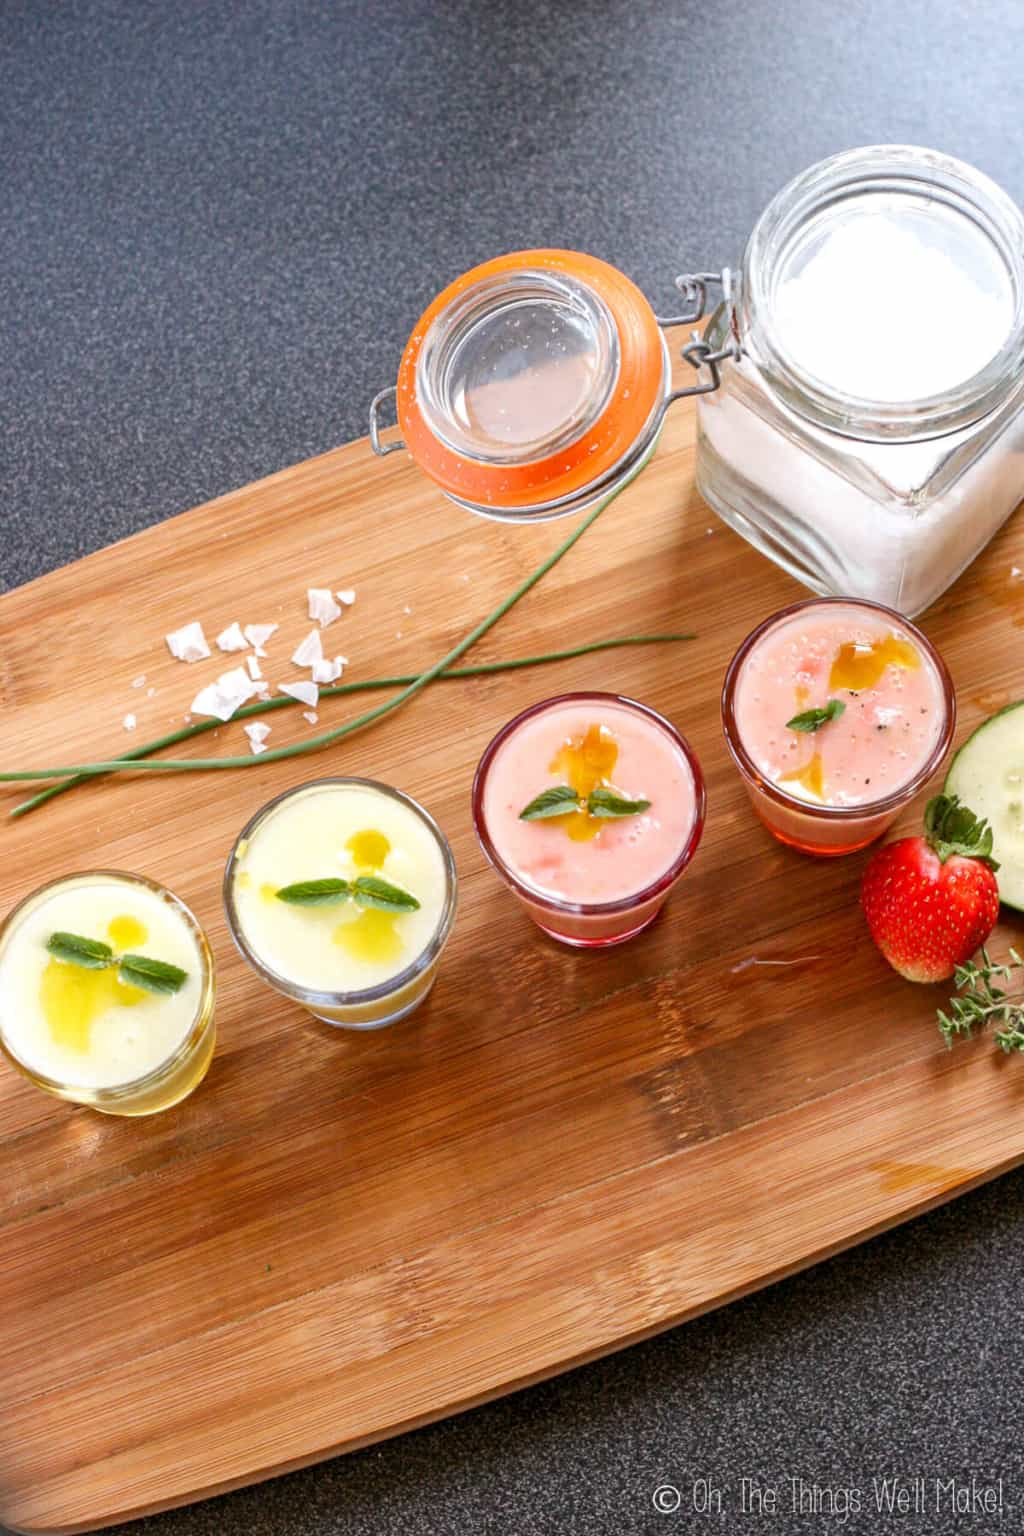 Overhead view of 4 shot glasses filled with a chilled gazpacho soup. The two on the left are green, the two on the right are pink. All are garnished with mint.